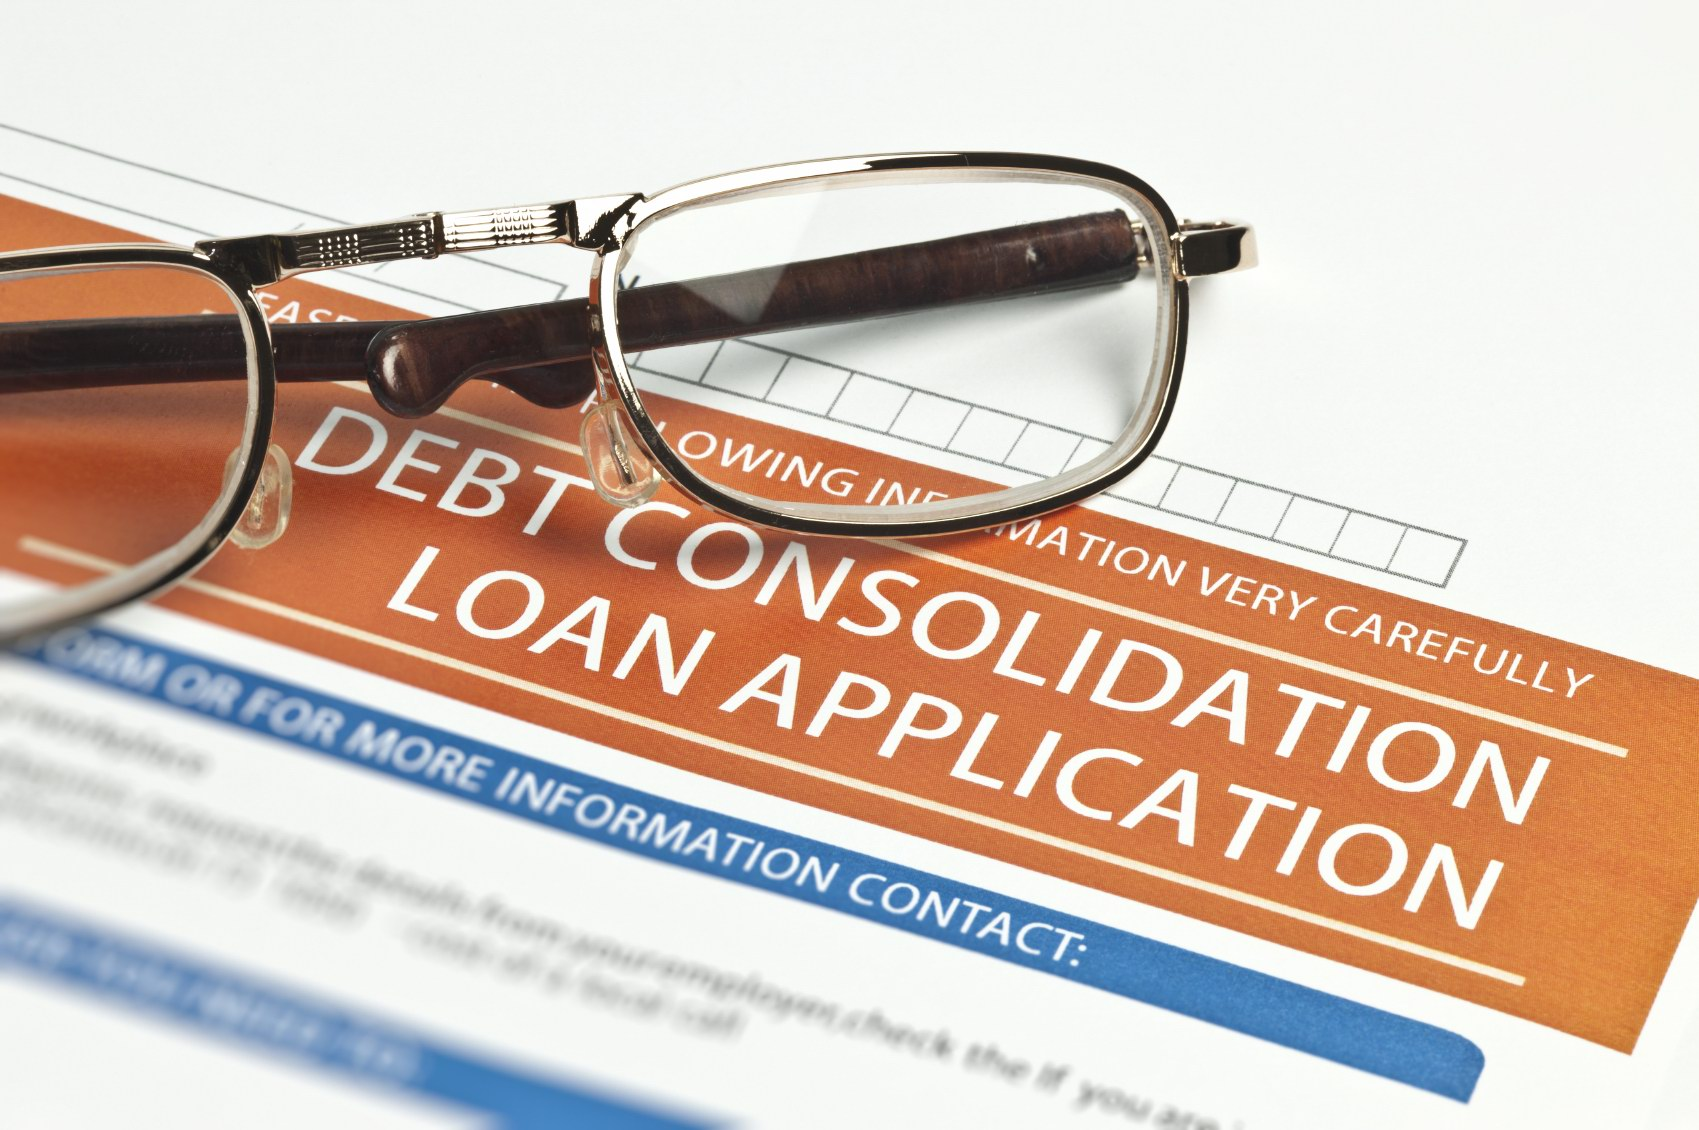 Common Traps Of Debt Consolidation And Ways To Avoid Them